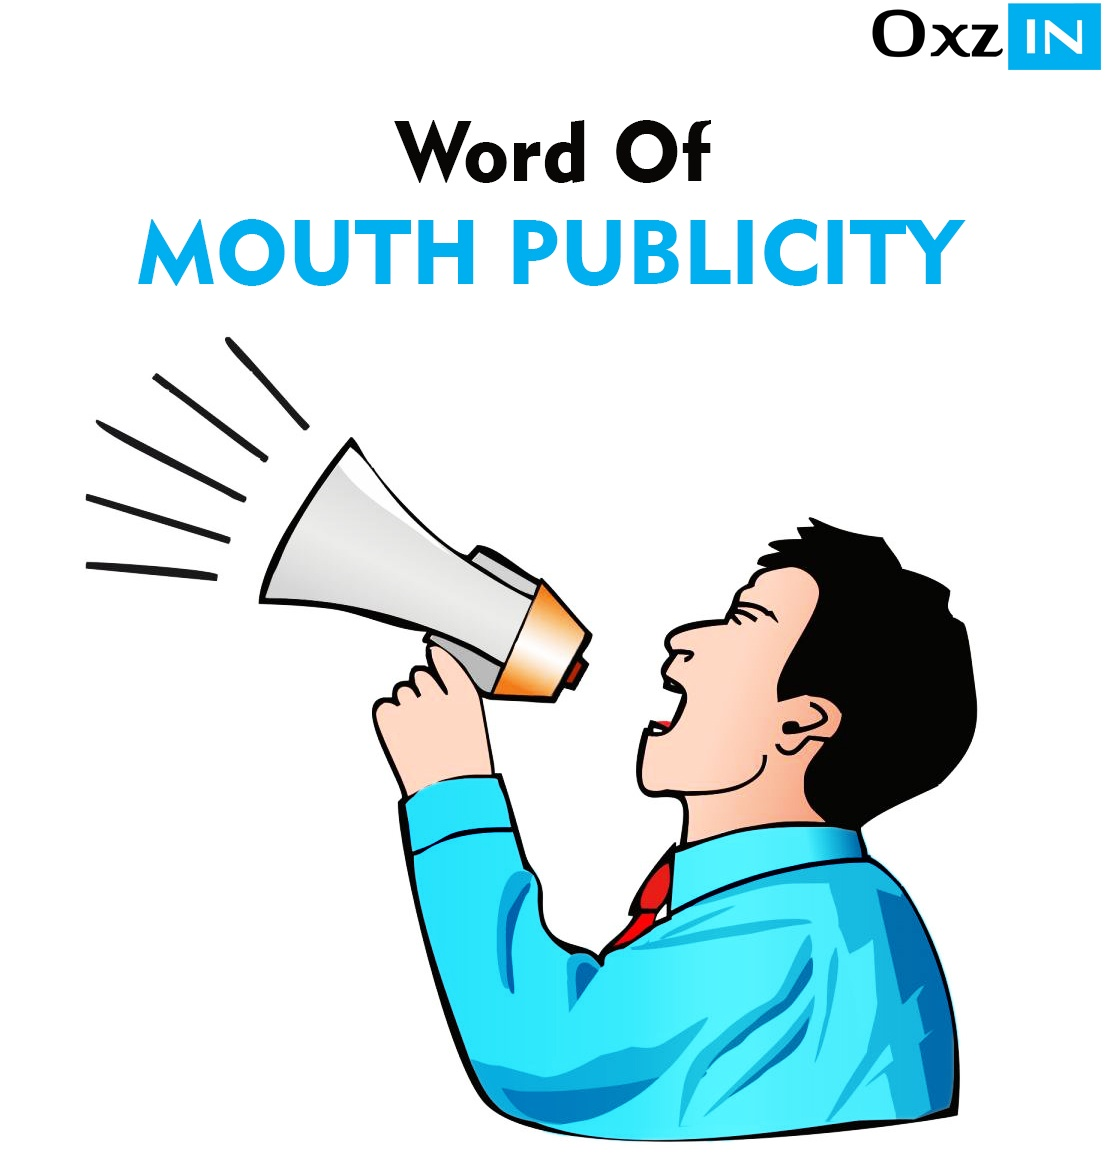 Word of mouth publicity